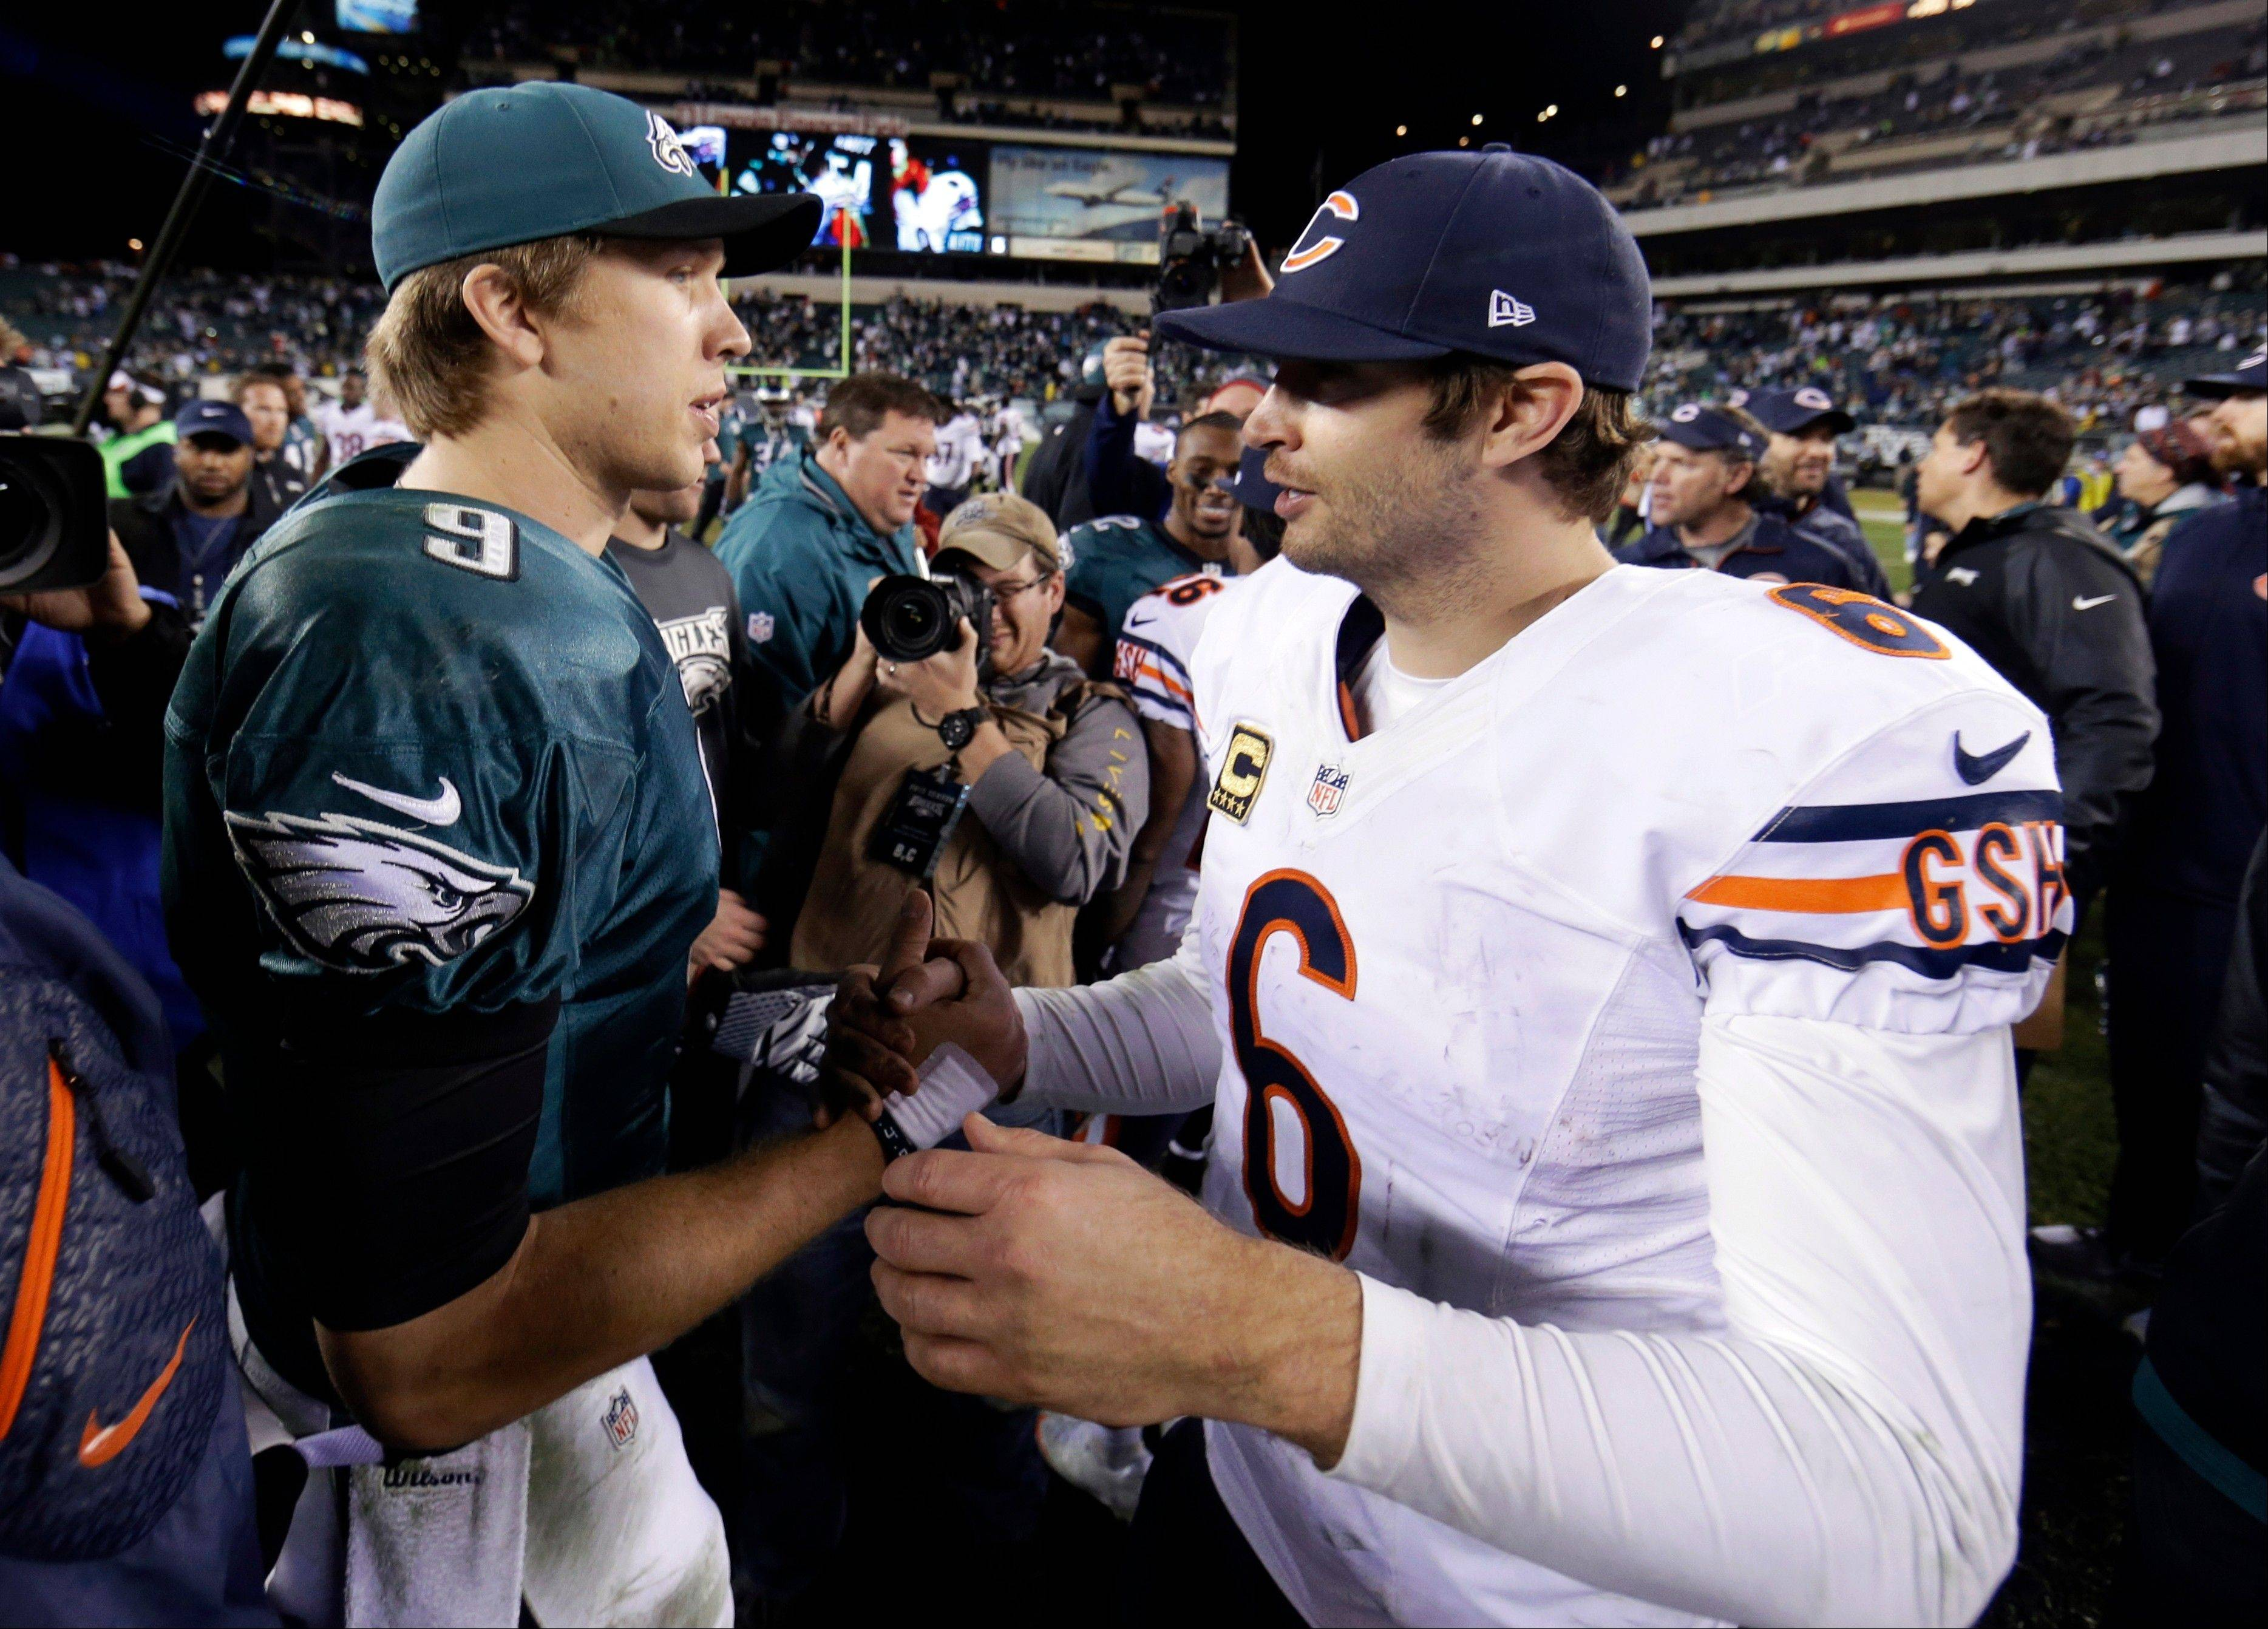 Quarterback Jay Cutler greets his counterpart, the Eagles' Nick Foles, after the Bears dropped a 54-11 decision in Philadelphia on Sunday night.